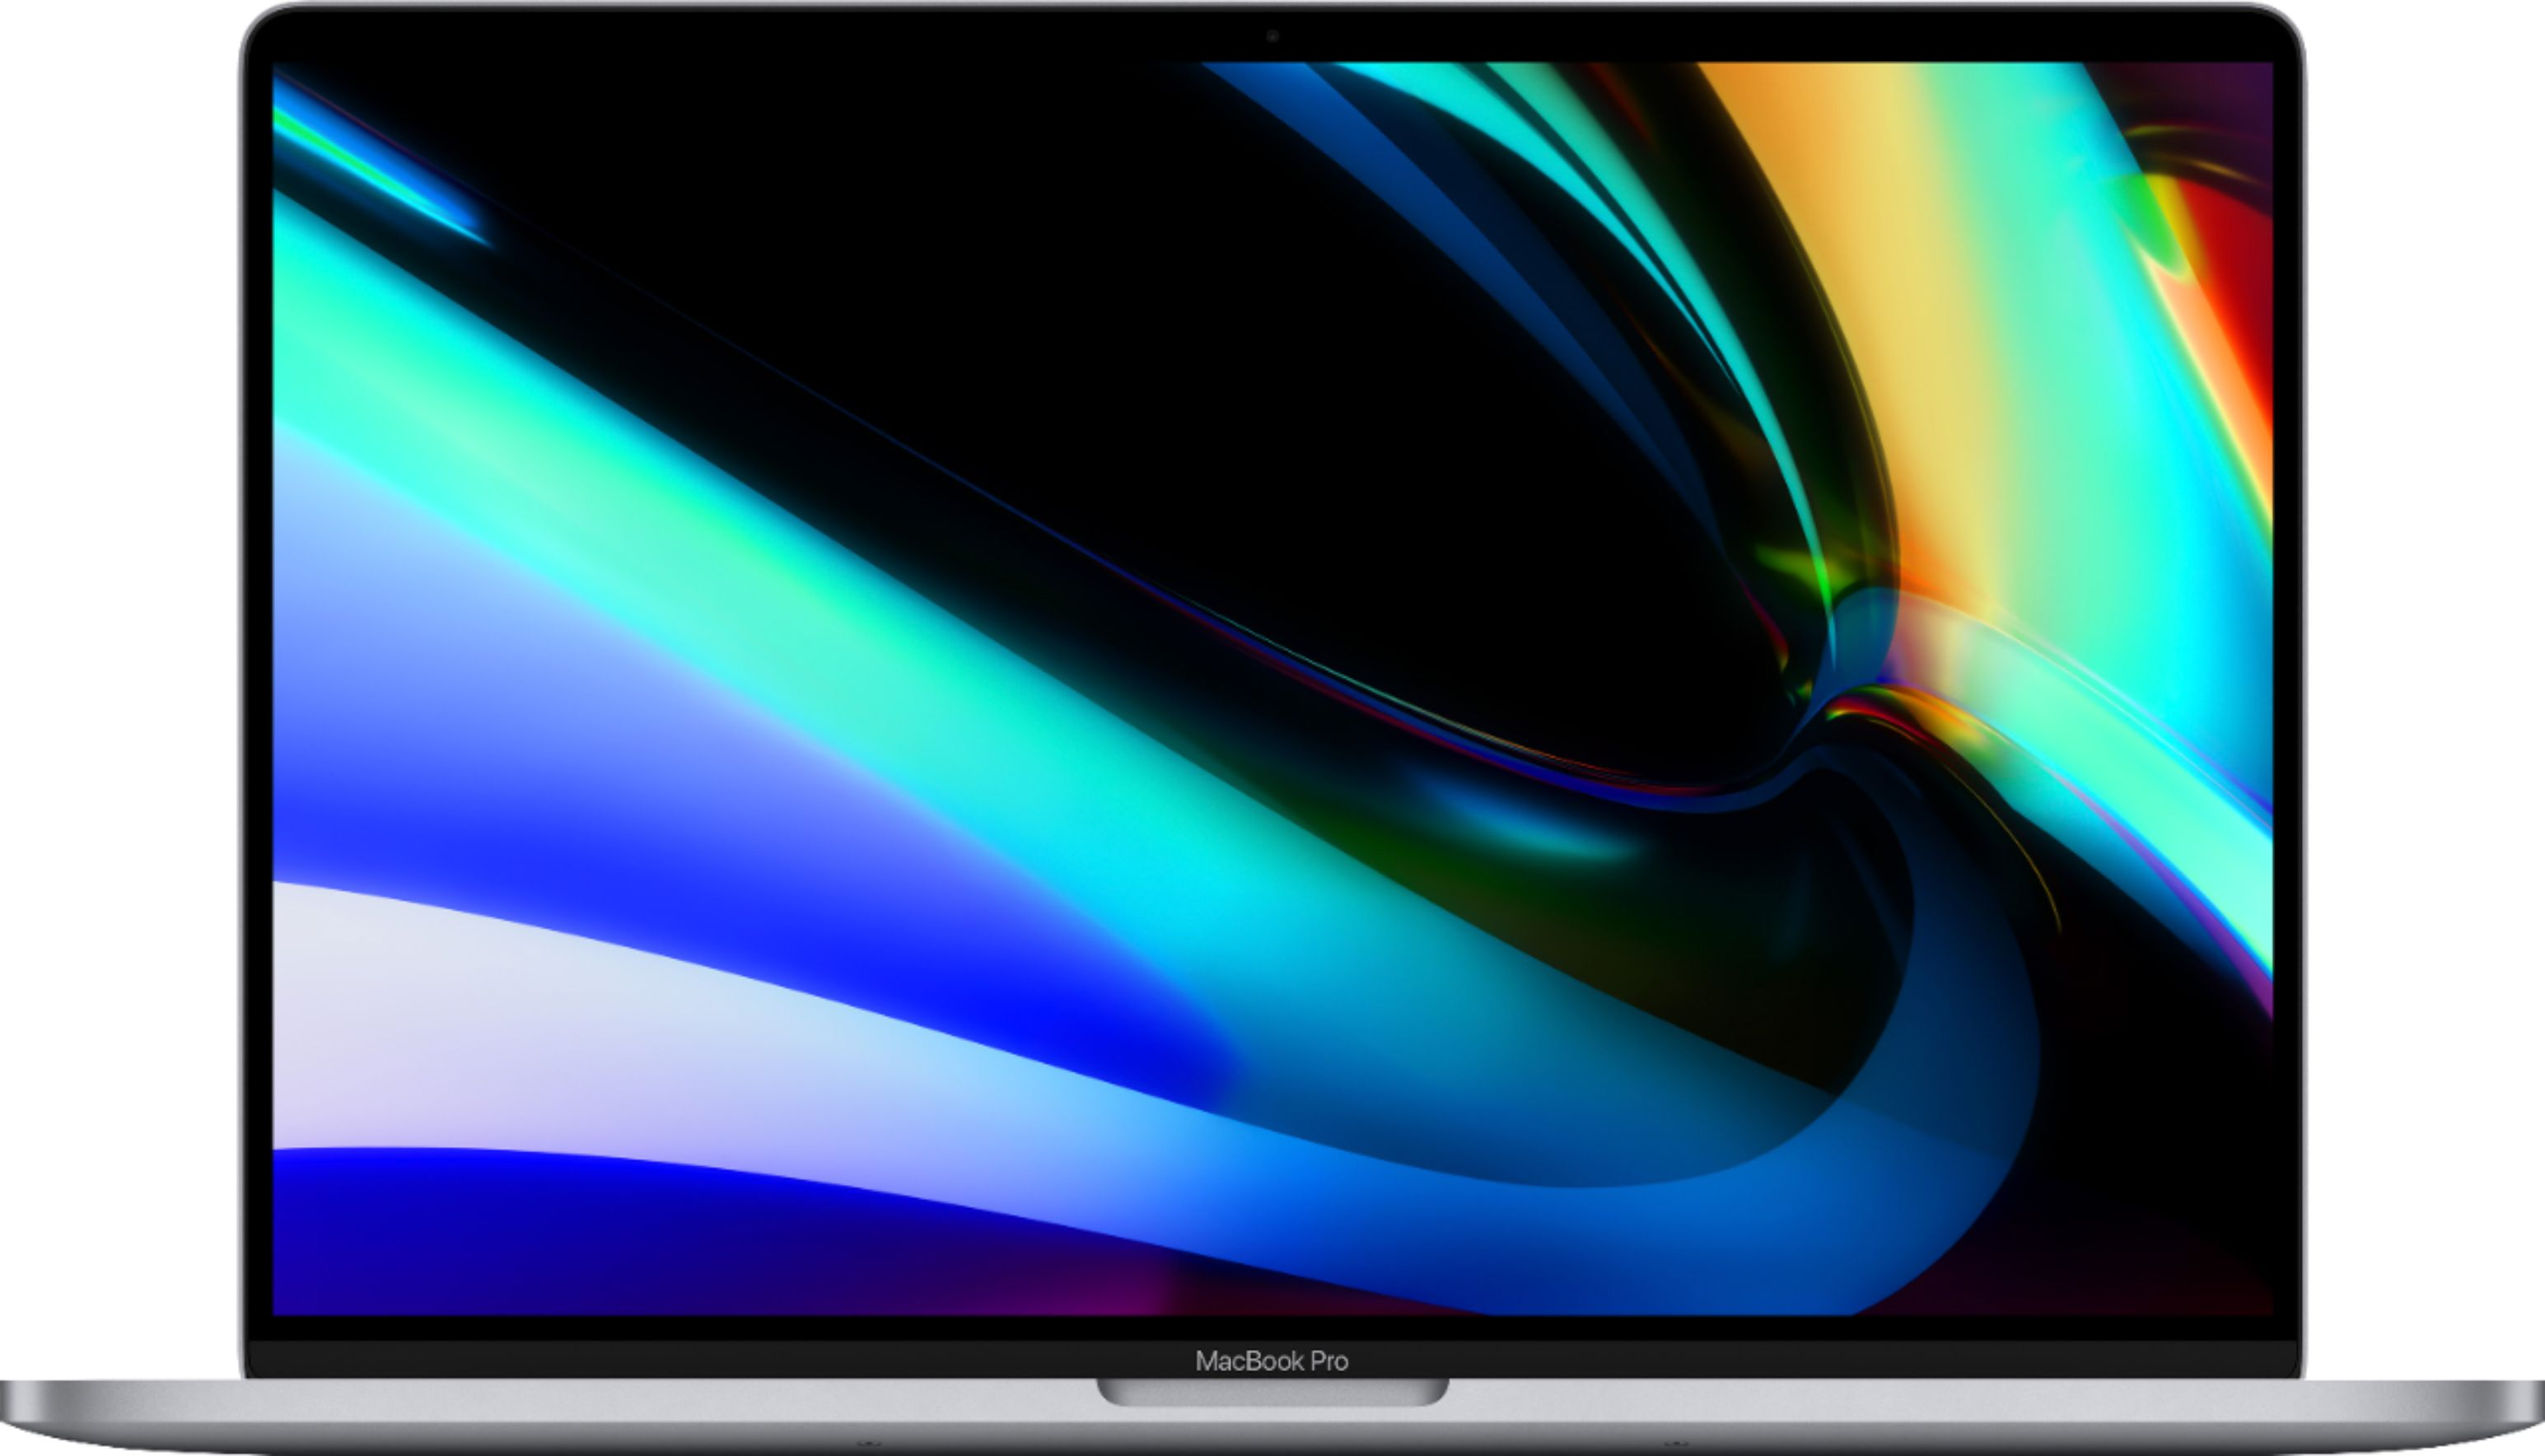 """Front Zoom. Apple - MacBook Pro - 16"""" Display with Touch Bar - Intel Core i9 - 16GB Memory - AMD Radeon Pro 5500M - 1TB SSD (Latest Model) - Space Gray."""